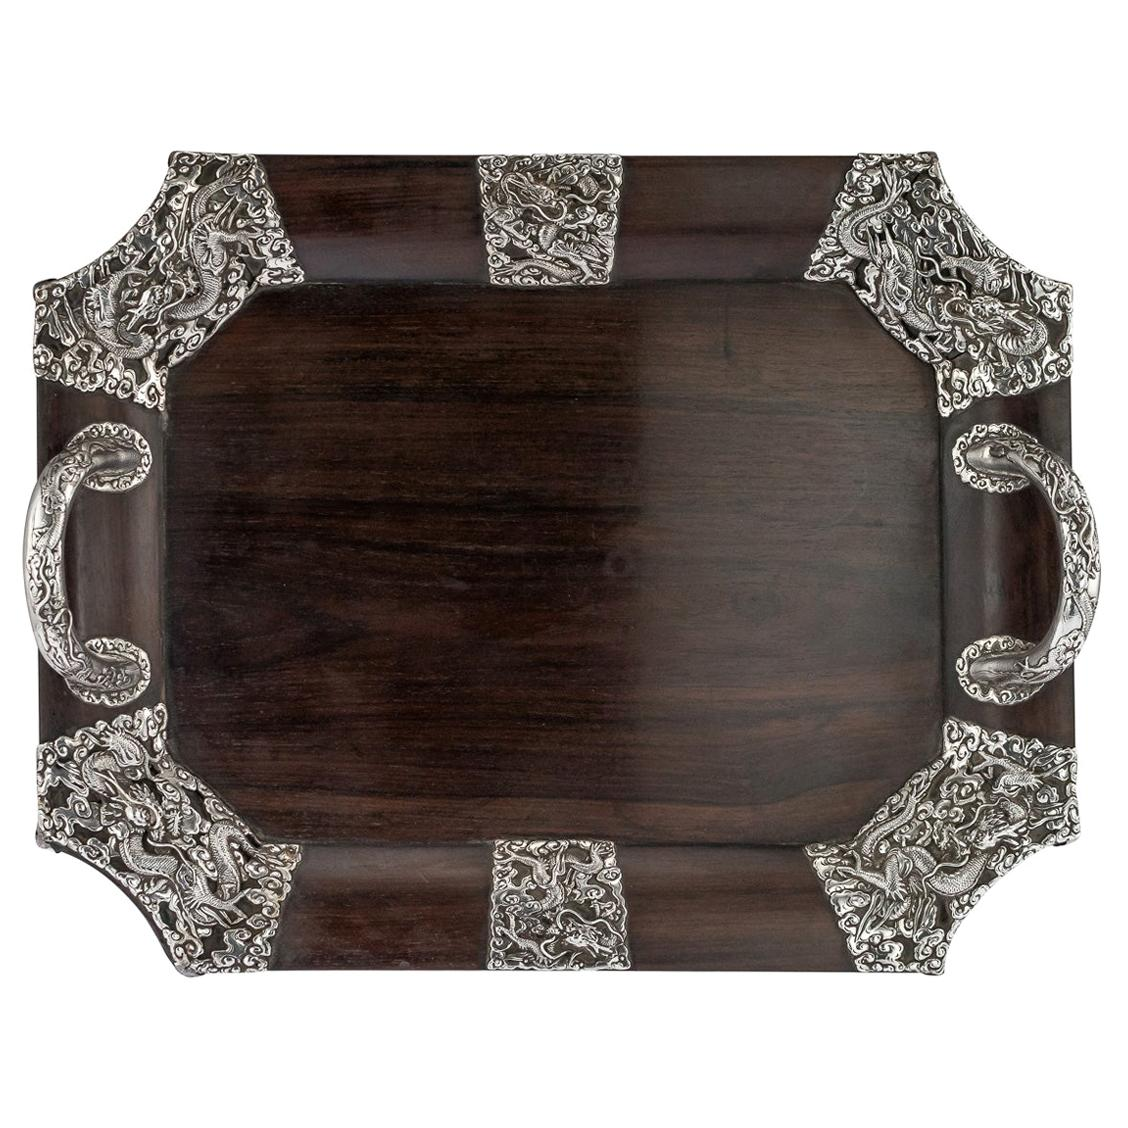 20th Century Japanese Solid Silver on Wood Serving Tray, circa 1900